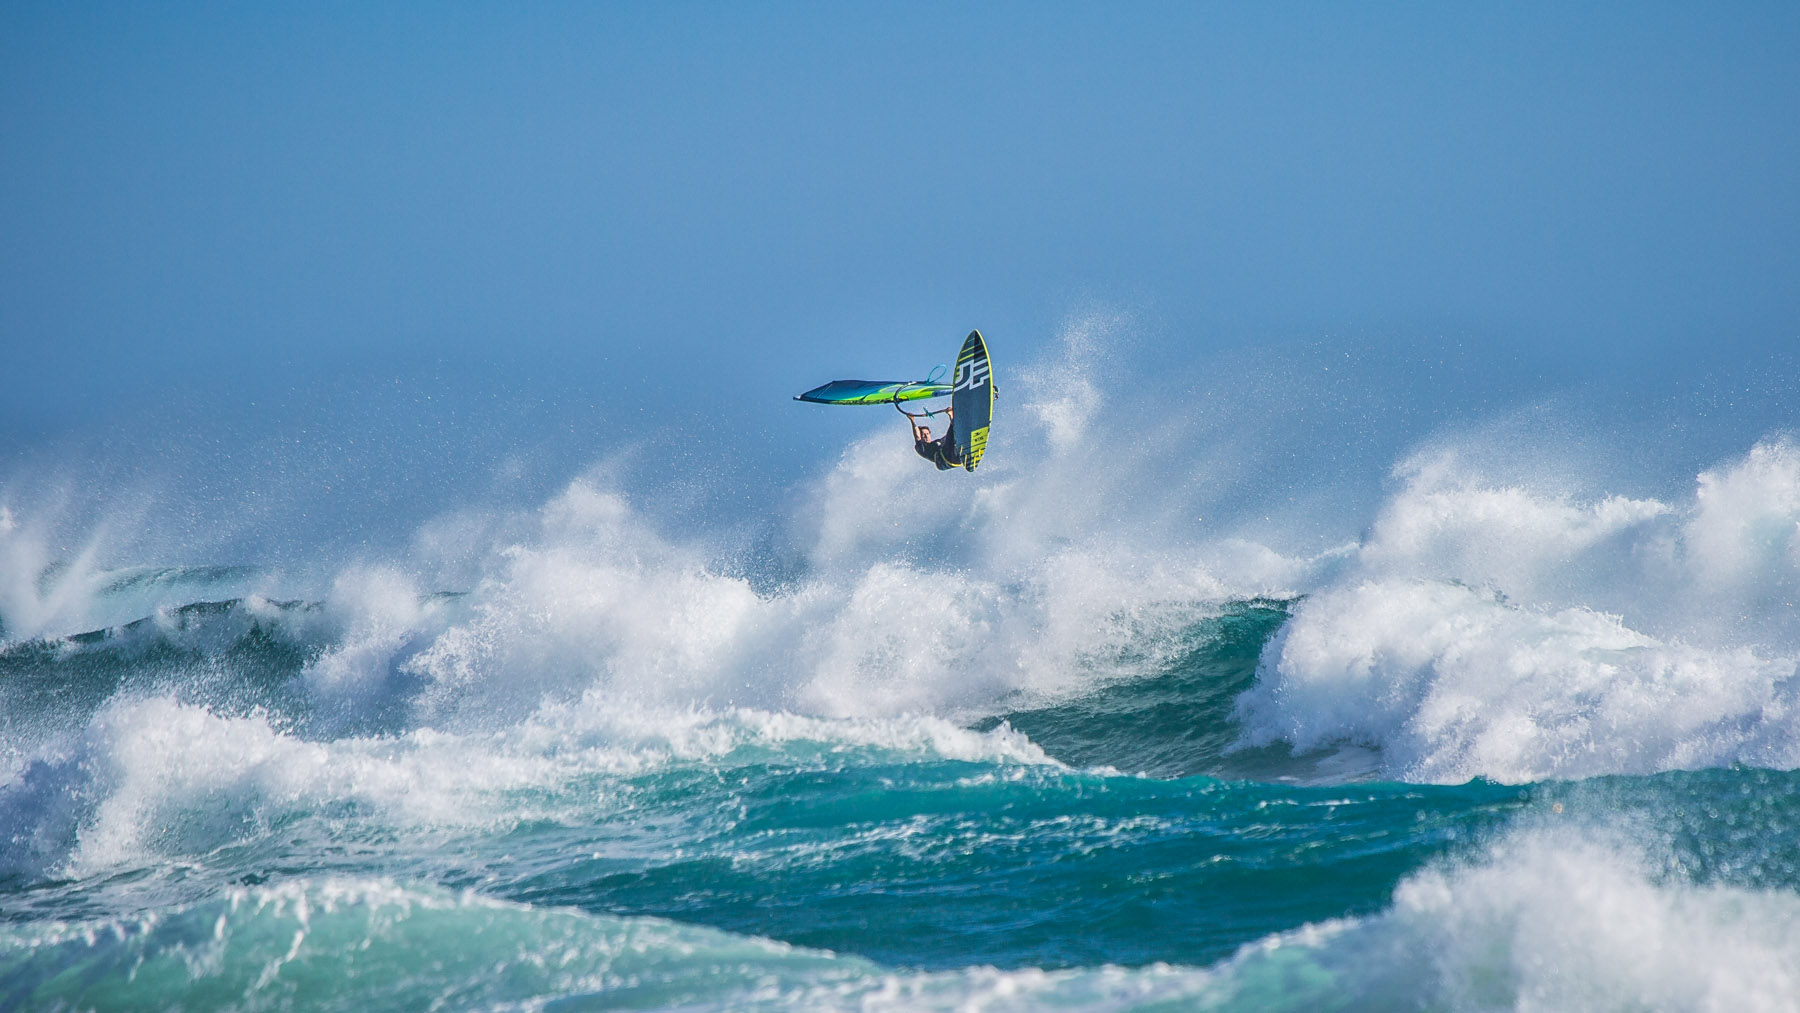 phillip island windsurfing at woolamai